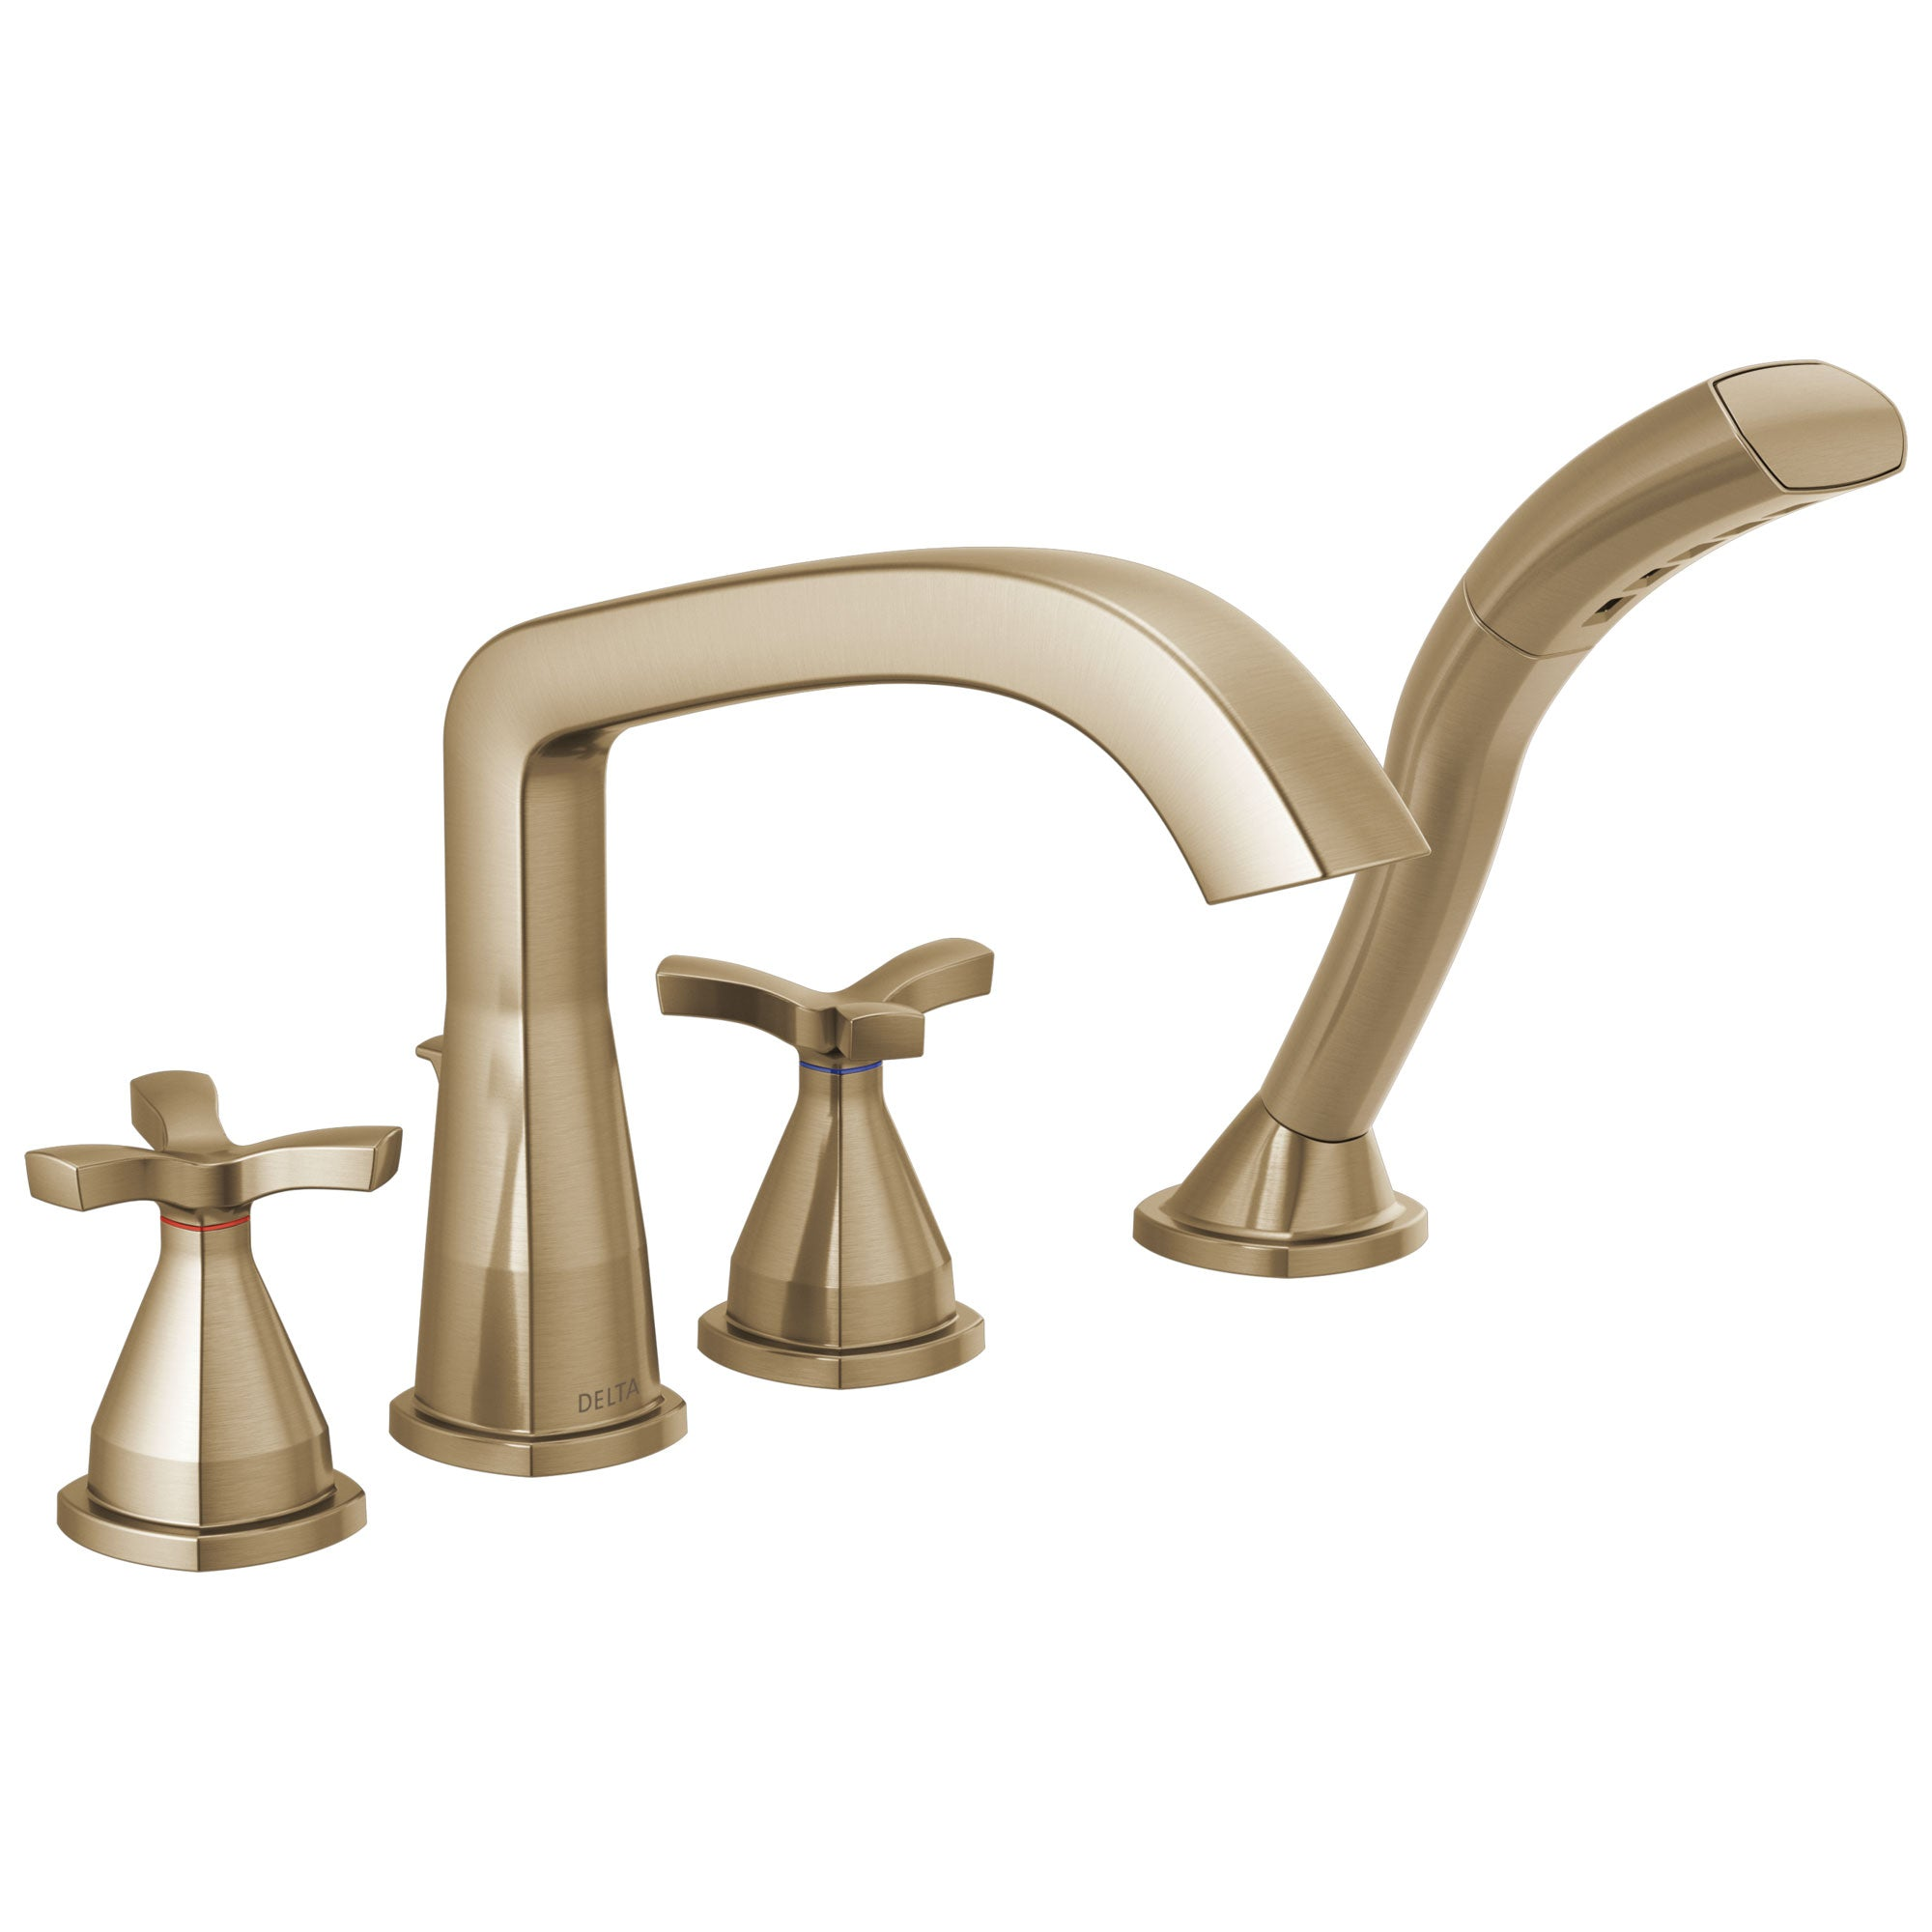 Delta Stryke Champagne Bronze Finish Cross Handle Deck Mount Roman Tub Filler Faucet with Hand Shower Trim Kit (Requires Valve) DT47766CZ